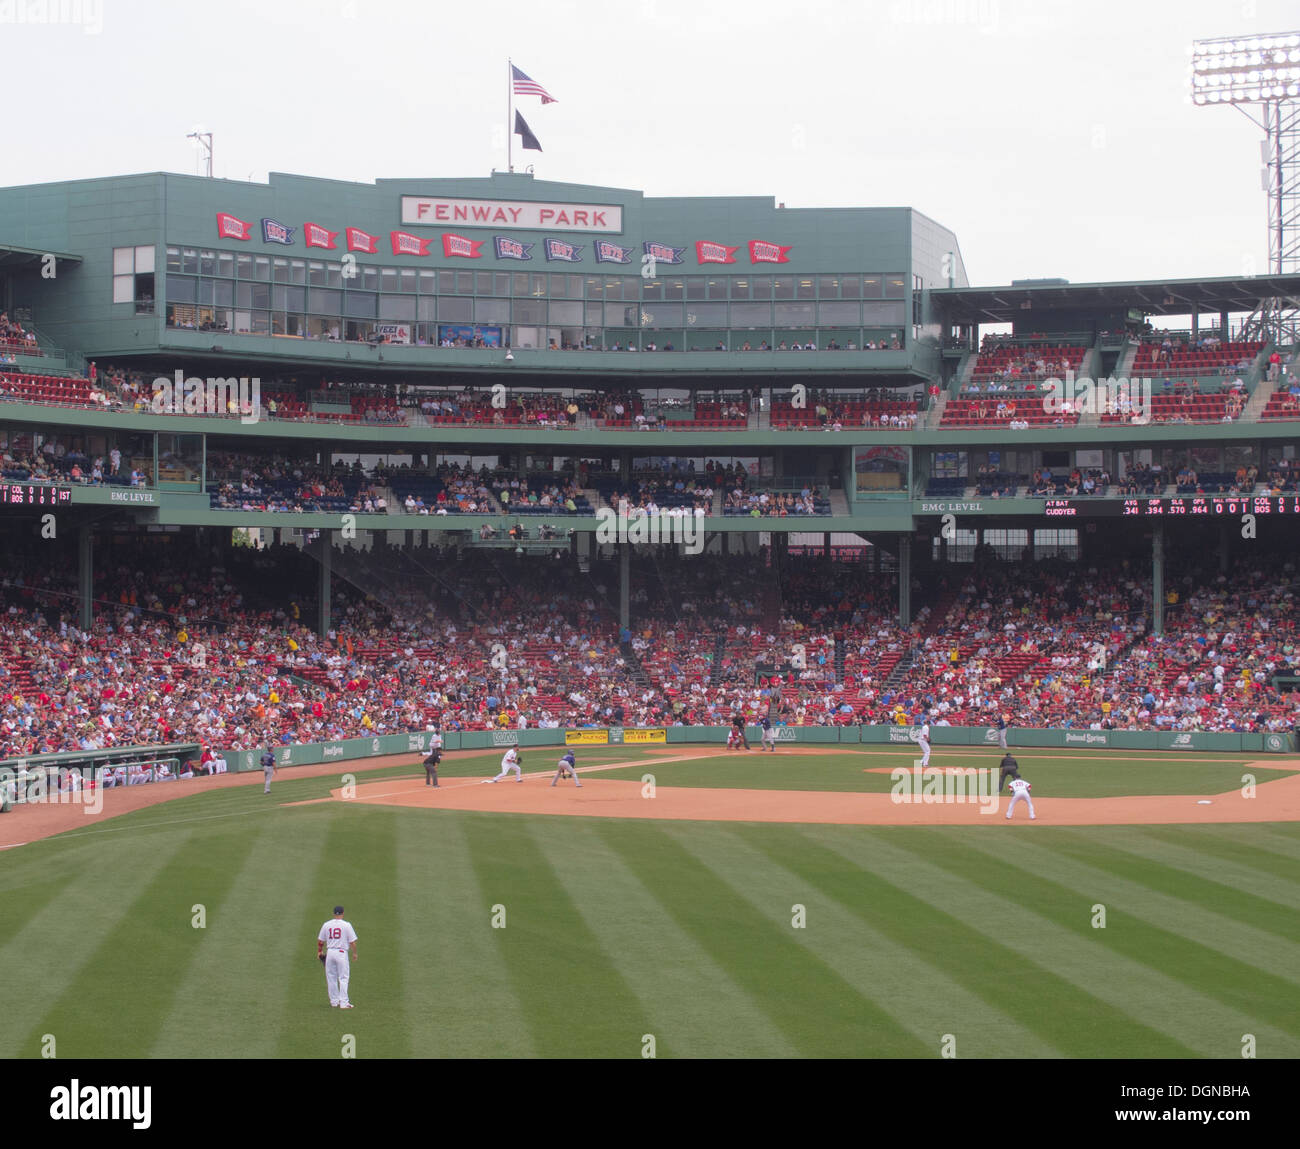 Game day at Fenway Park, home of the Boston Red Sox baseball team since 2012. The Boston Red Sox won the 2013 World Stock Photo